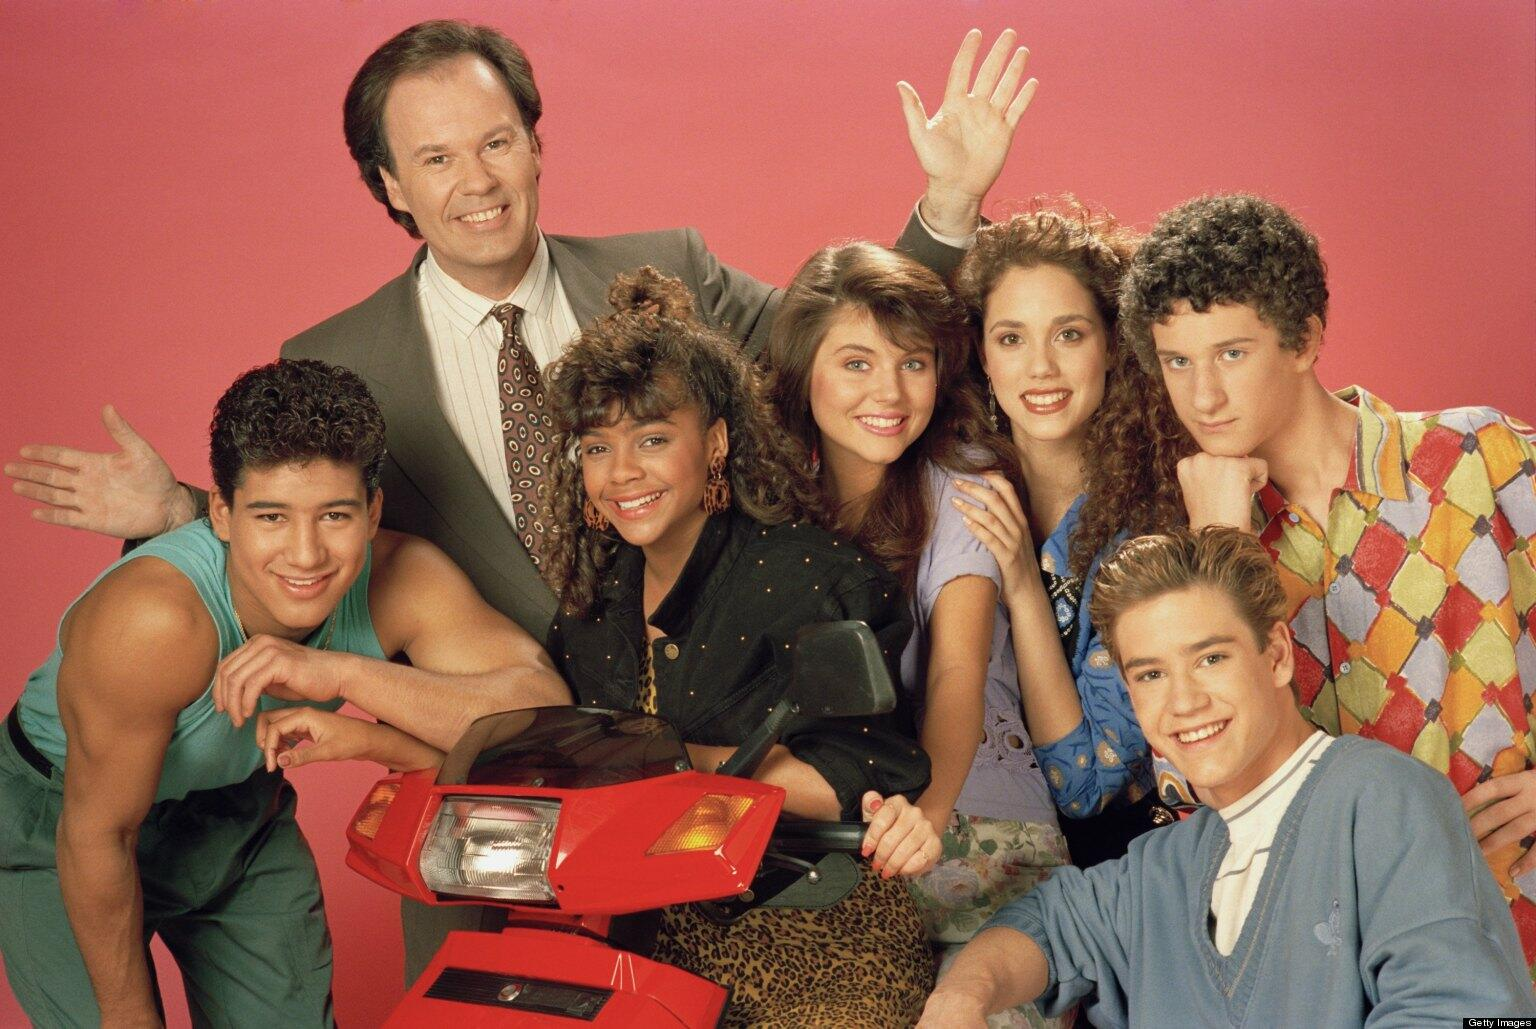 SAVED BY THE BELL -- Season 2 -- Pictured: (l-r) Mario Lopez as Alabert Clifford 'A.C.' Slater, Dennis Haskins as Mr. Richard Belding, Lark Voorhies as Lisa Turtle, Tiffani Thiessen as Kelly Kapowski, Elizabeth Berkley as Jessie Spano, Mark-Paul Gosselaar